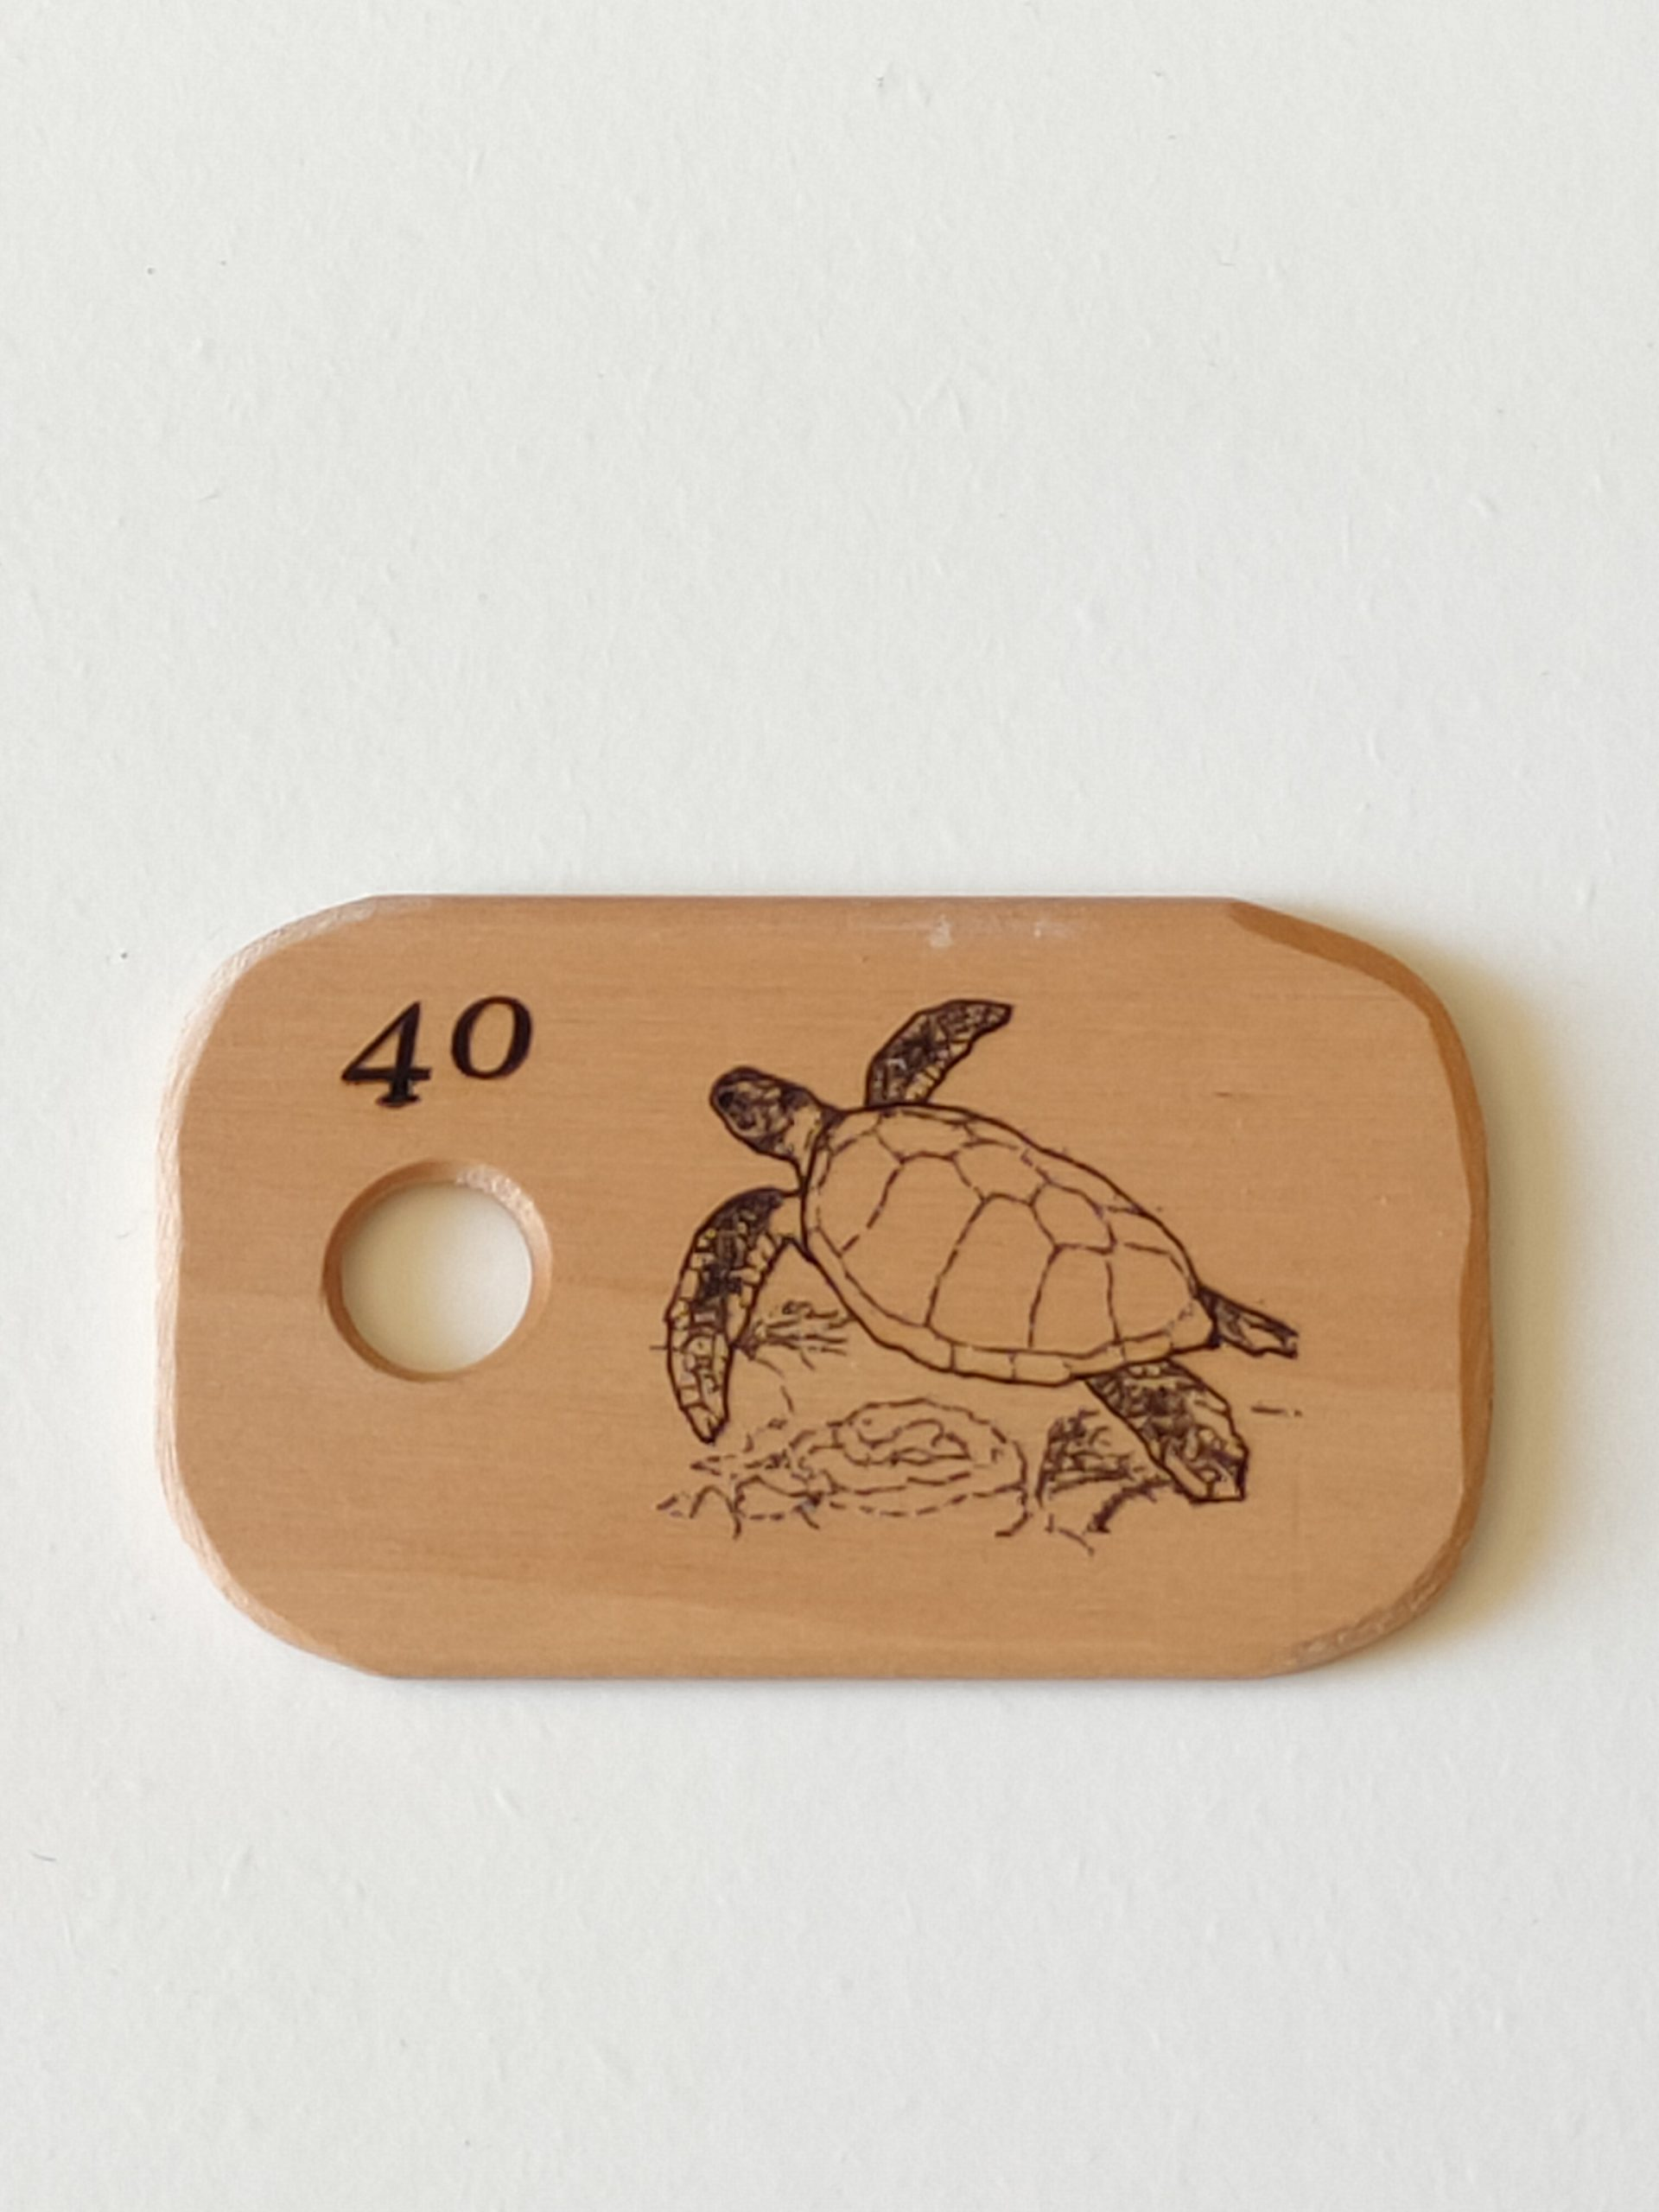 40 – Tortue